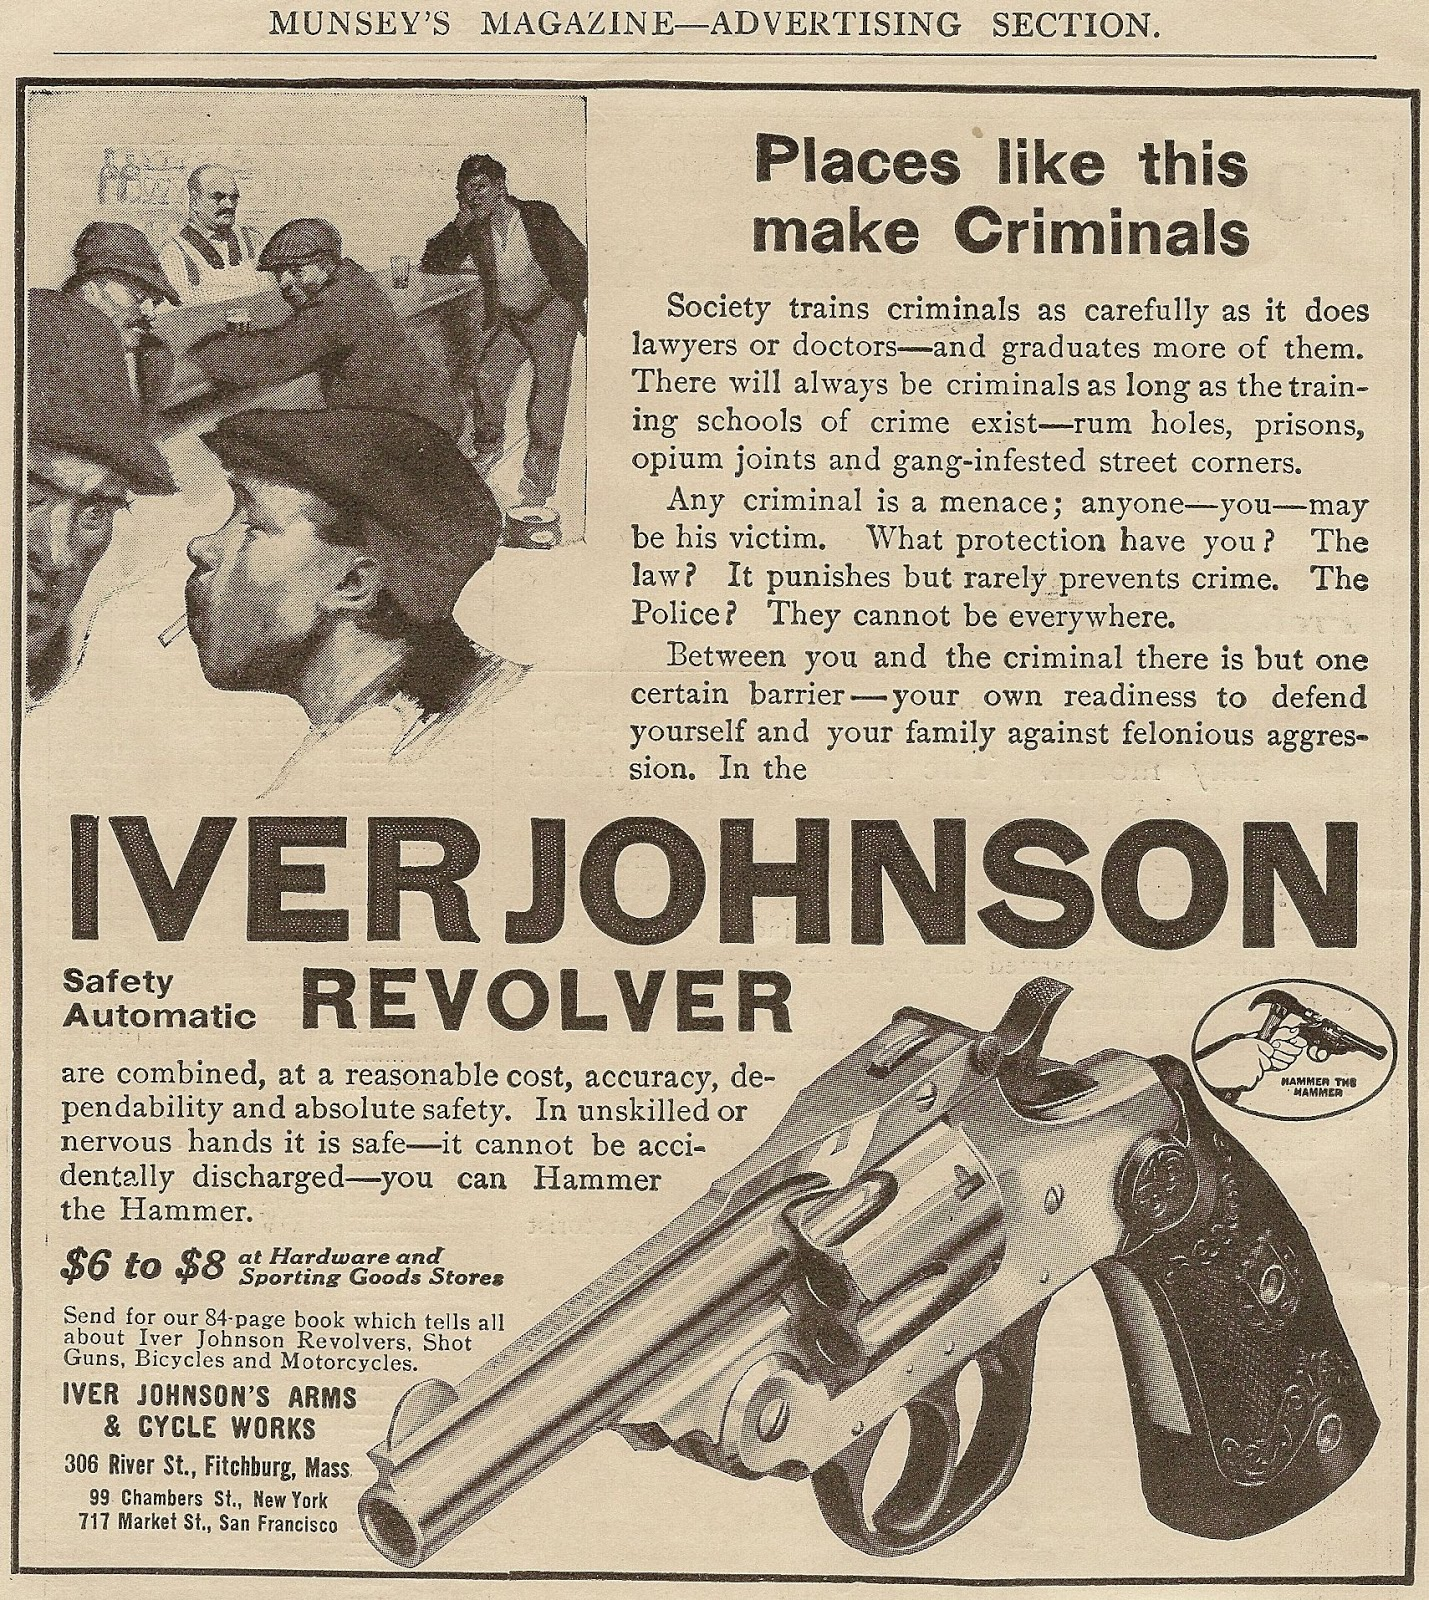 Vintage Iver Johnson Ad From MUNSEY 'S MAGAZINE